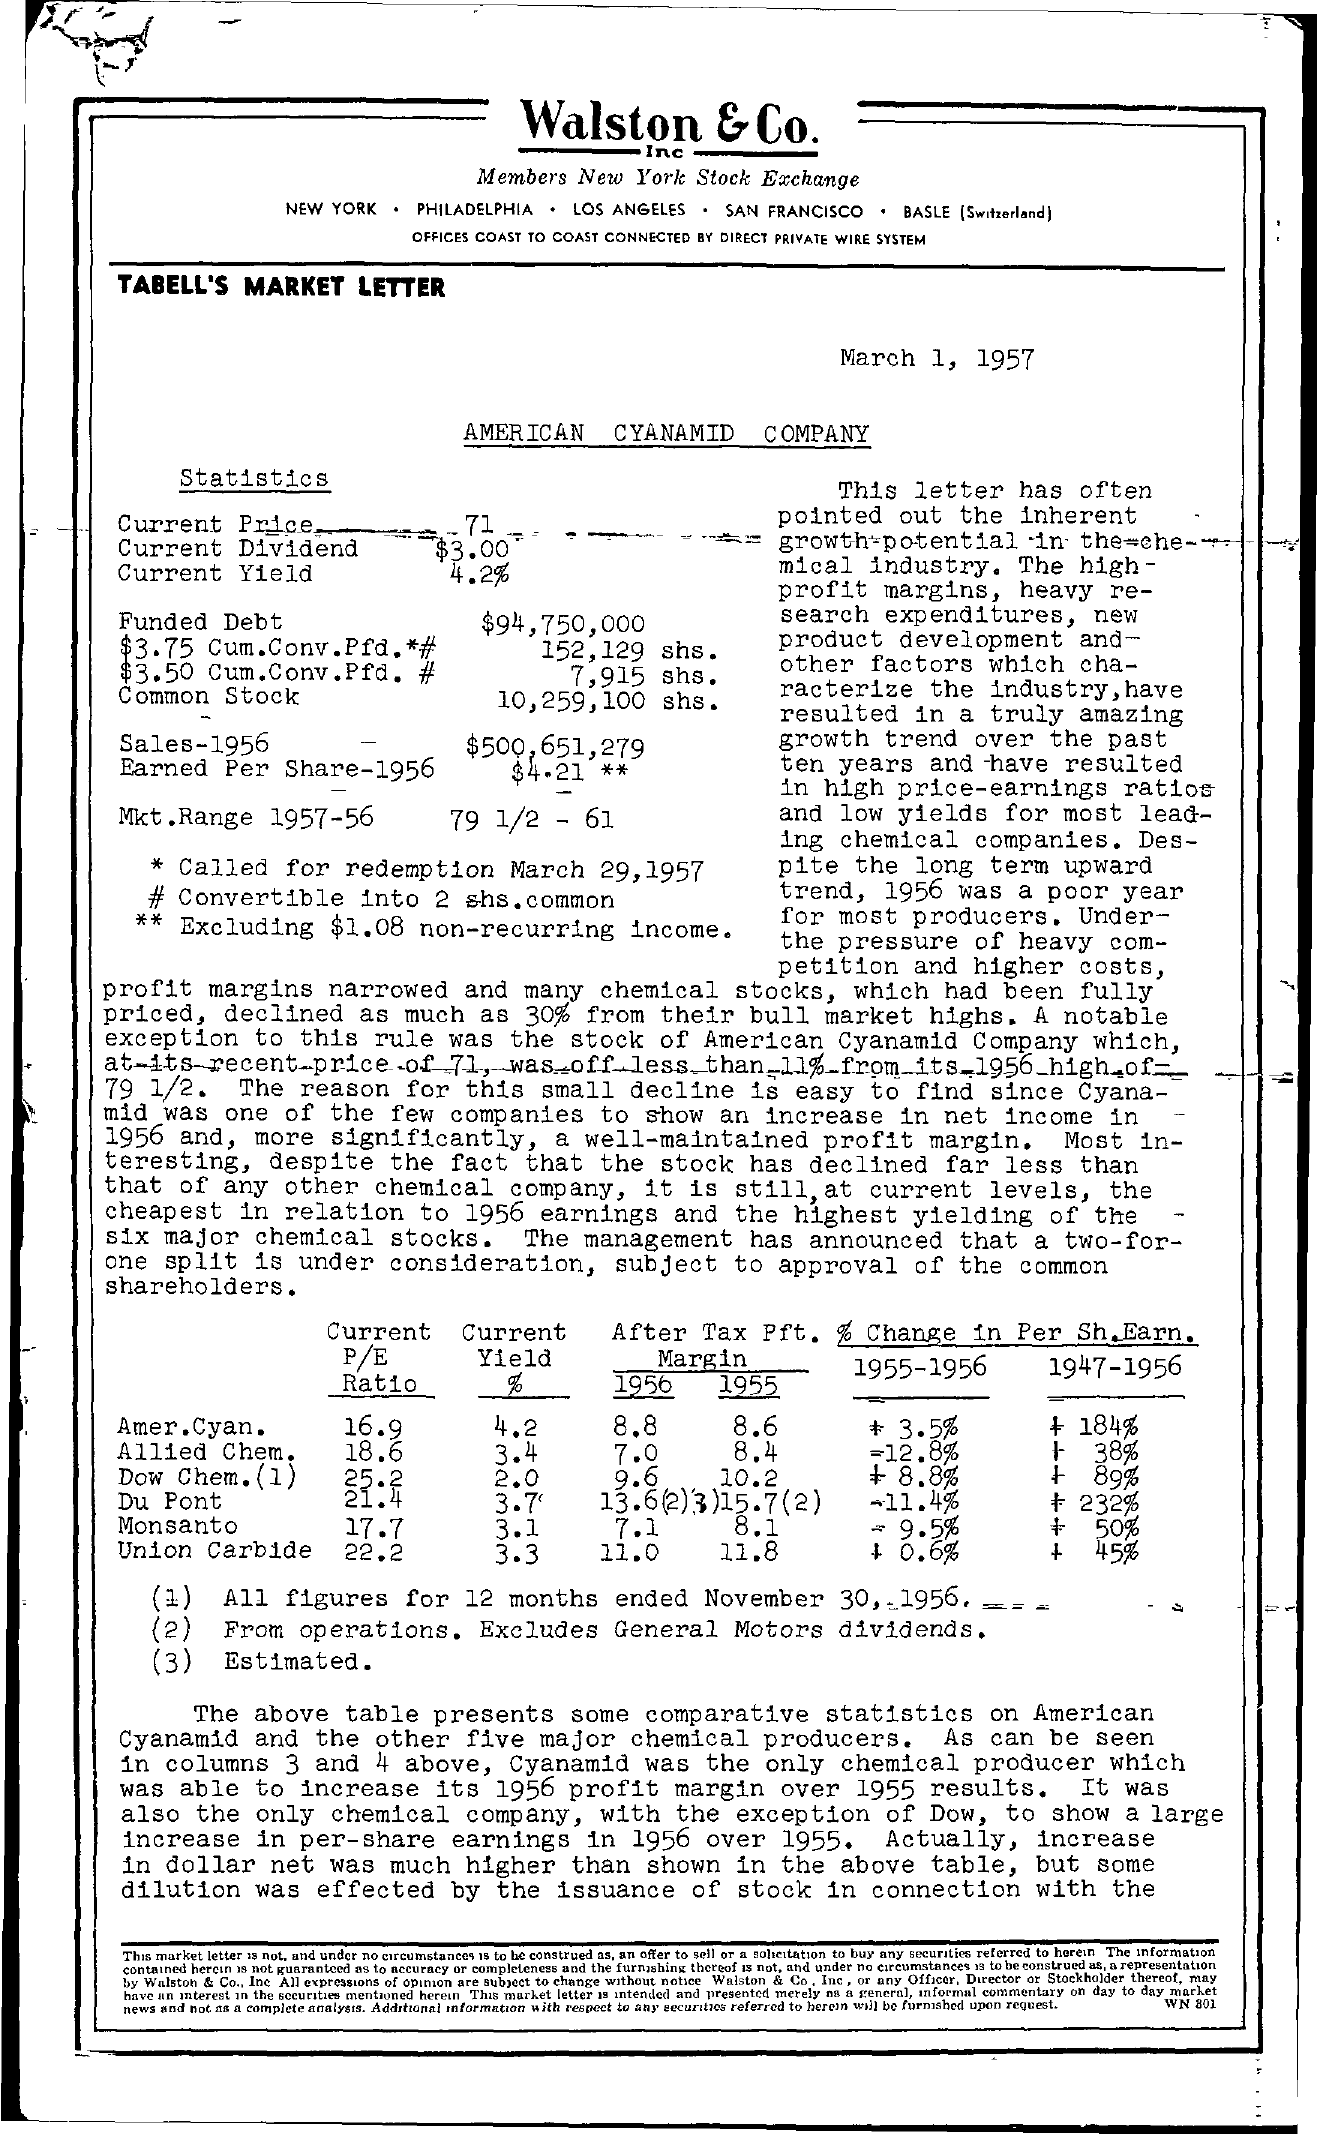 Tabell's Market Letter - March 01, 1957 page 1